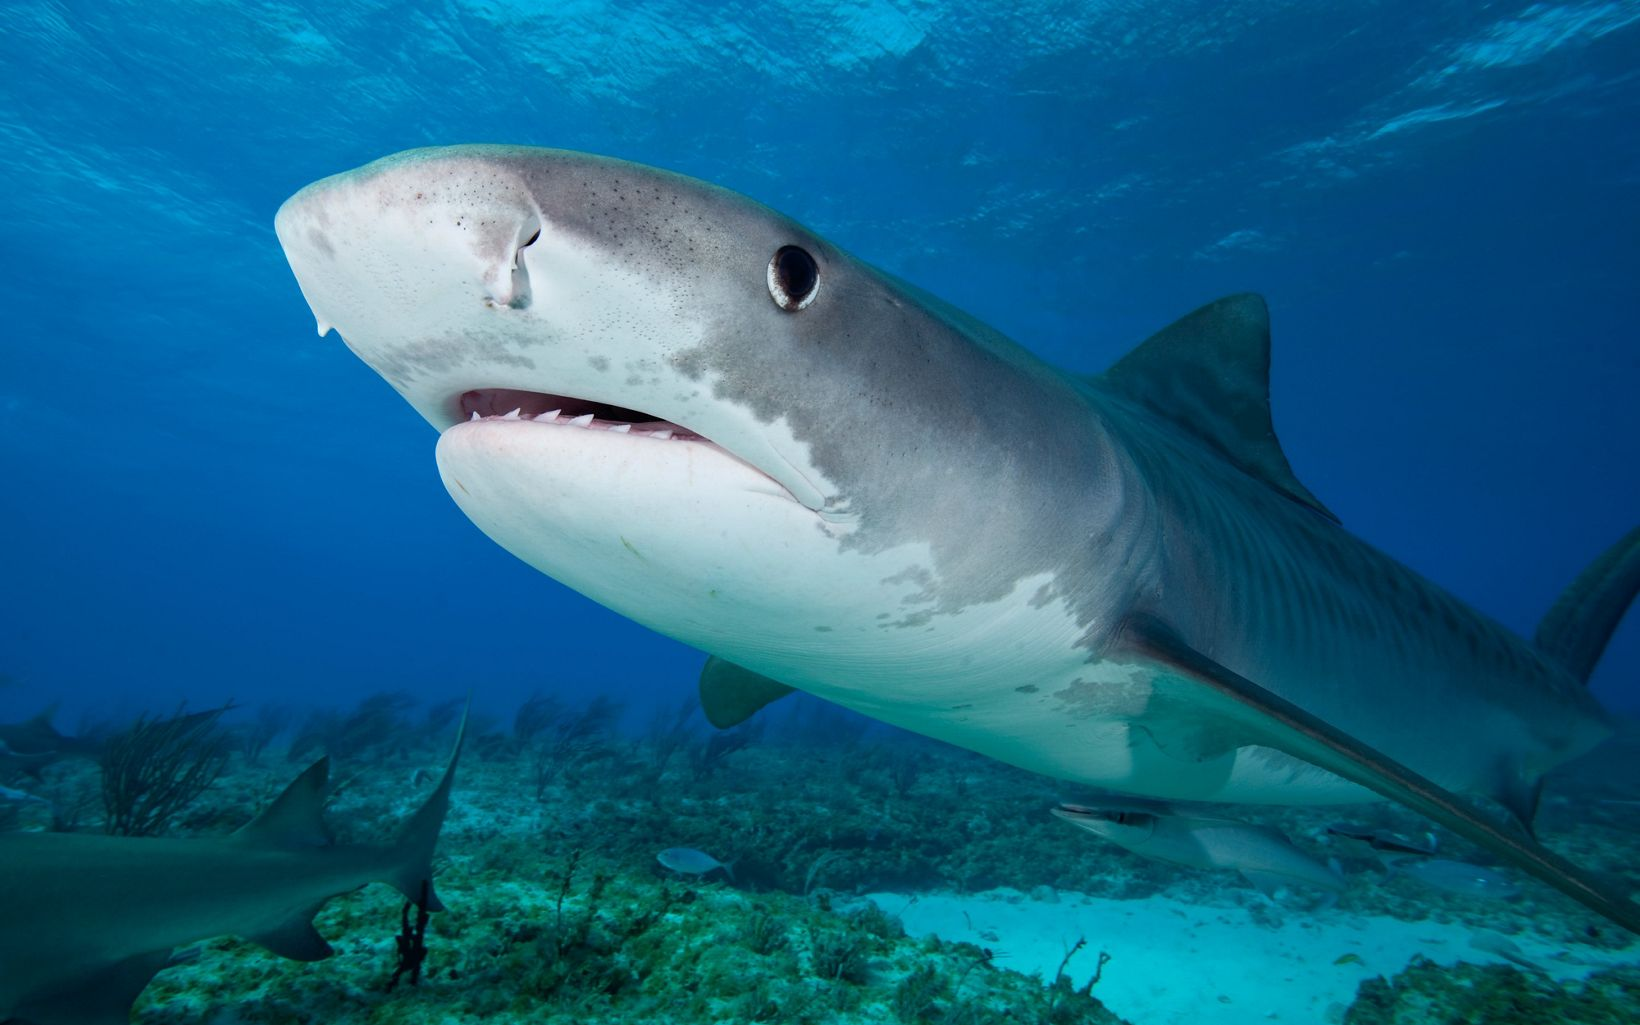 closeup of  a shark head with a slightly open mouth underwater